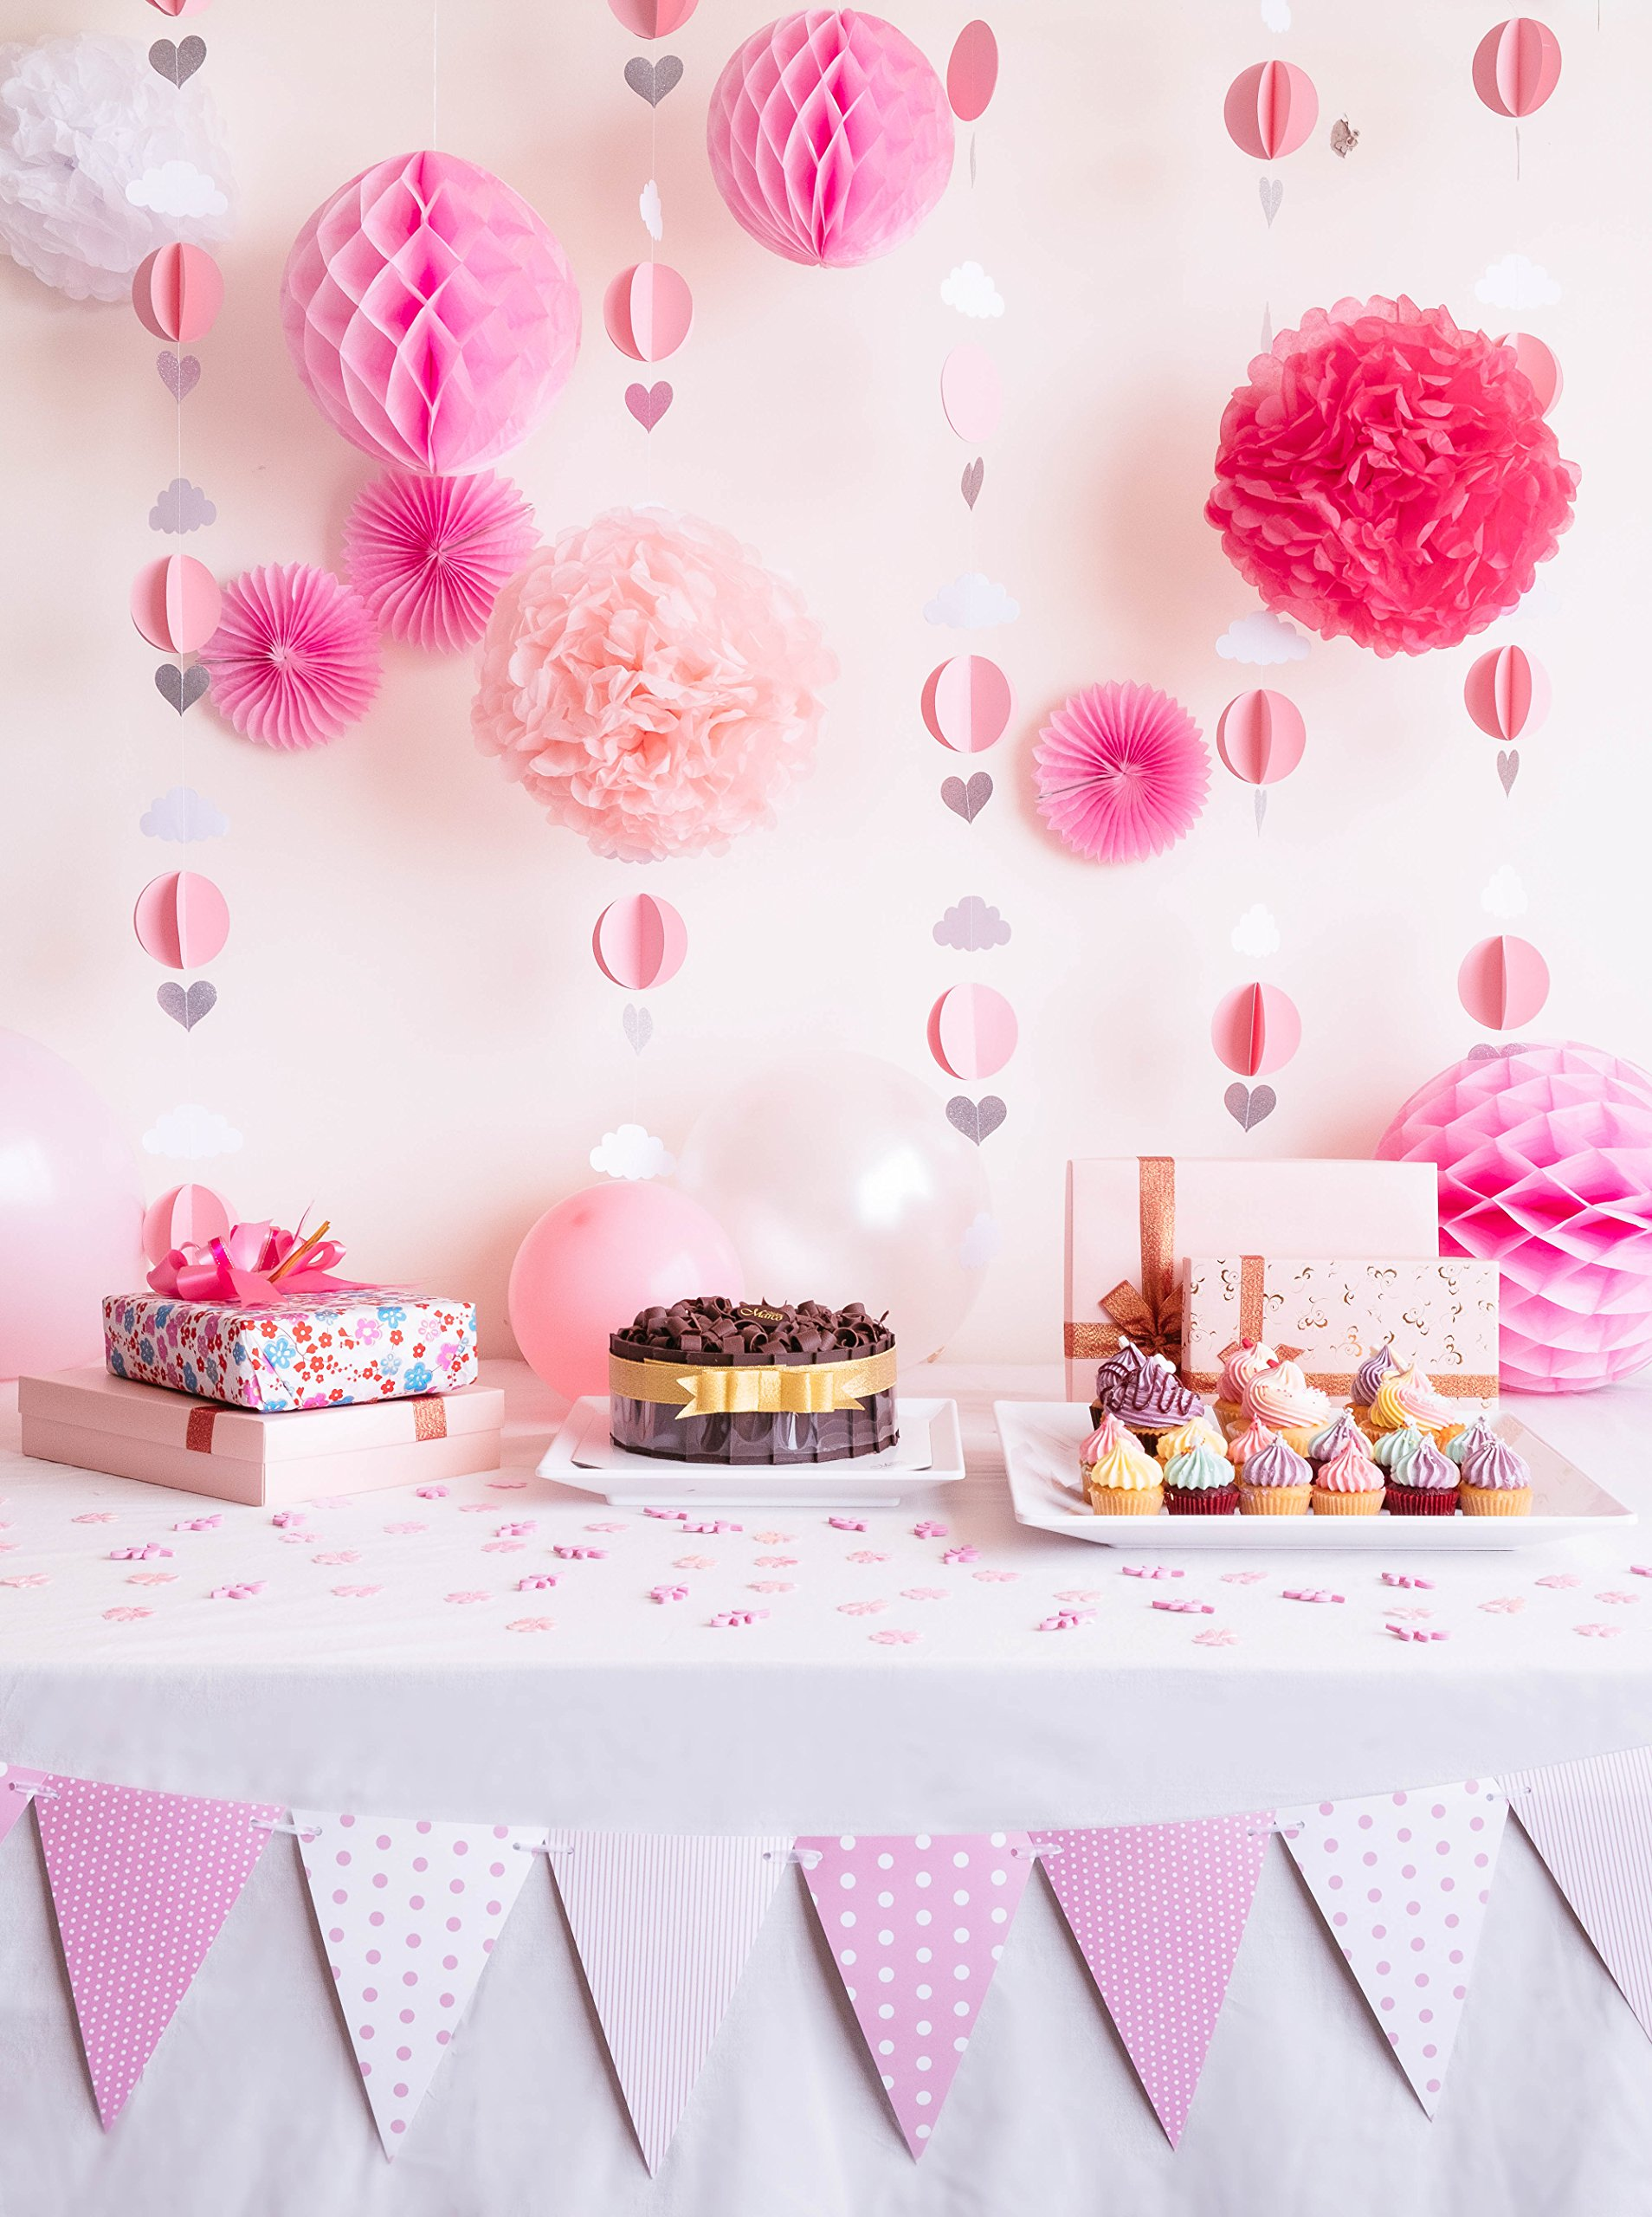 Baby Shower Party Decoration Set for Girls in Pink and White - Cute Balloon Garlands, Pink Pom Poms, Baby Girl Nursery Bunting, Honeycomb Balls and Paper Fans for First Birthday Party and Playroom